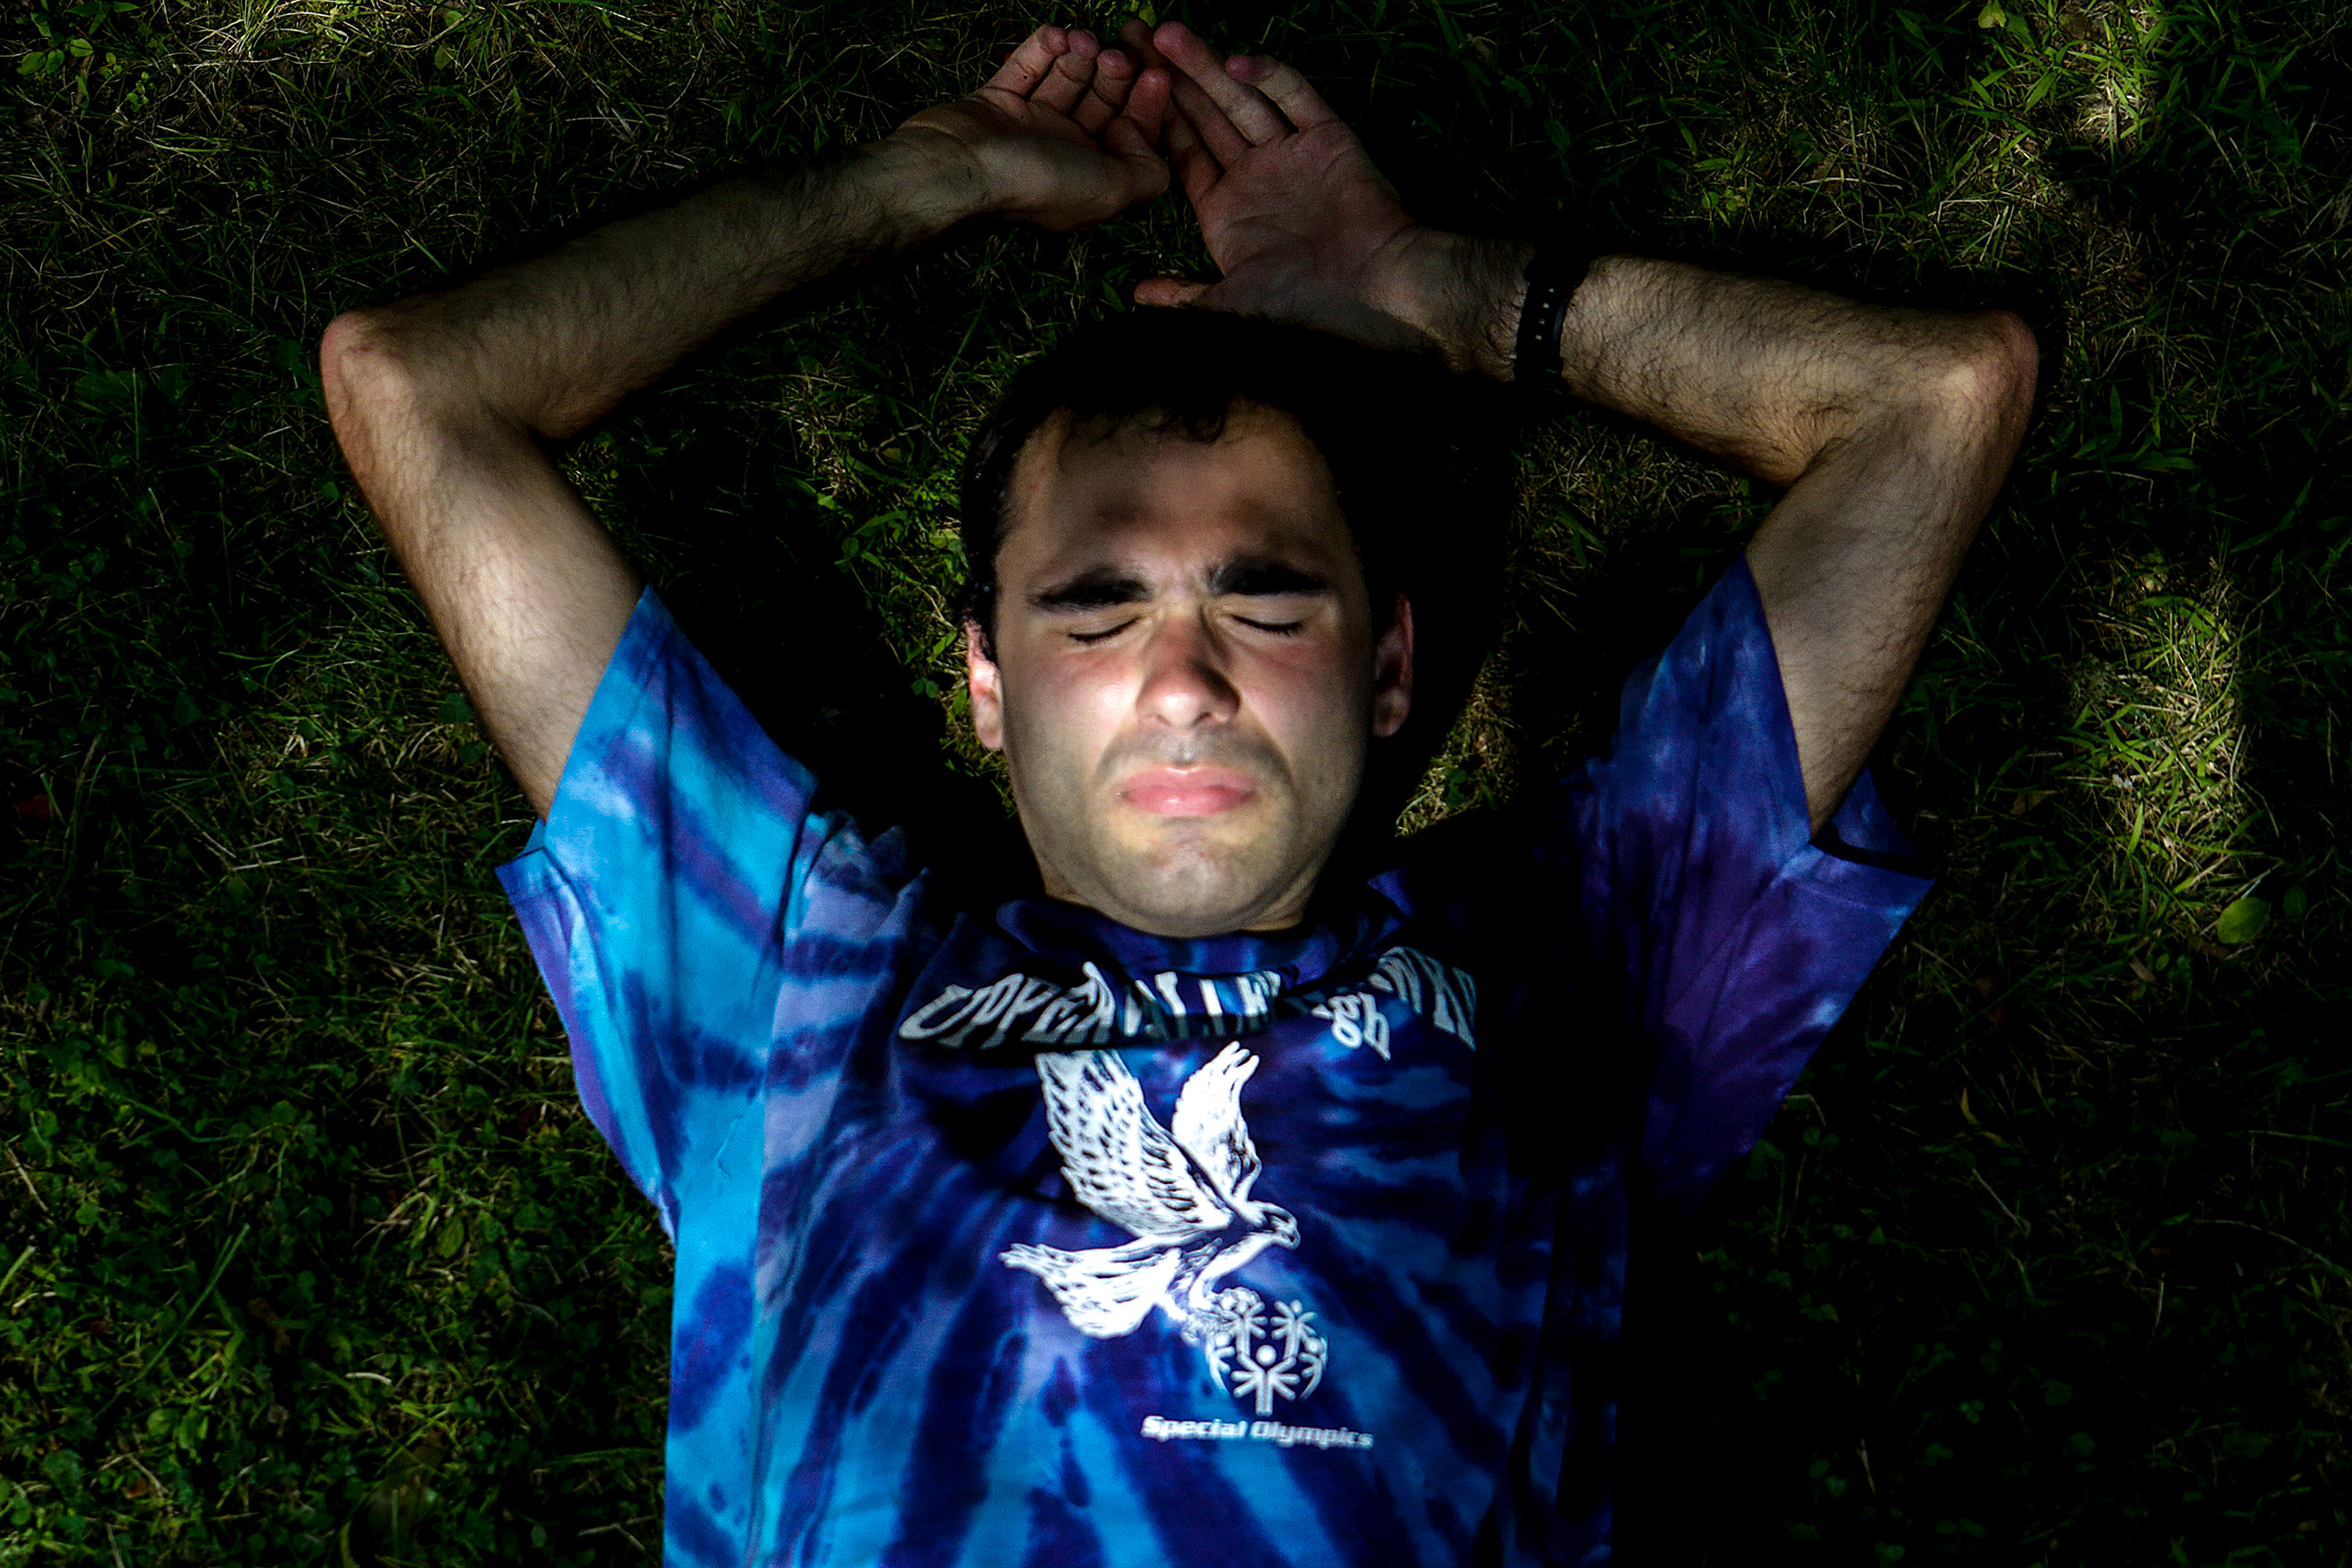 """Special Olympic athlete of the Upper Valley Hawks Walter Mosenthal, of Norwich, Vt., stretches after a run at the Hanover High School track on Saturday, Aug. 18, 2018. """"Not everyone would recognize someone with special needs,"""" Mosenthal said. But in the Hawks he has found a second family. Mosenthal thinks back to when he invited the team over to his house after he graduated high school. His teammates being there showed him how much they cared. """"It wasn't just for the athletics. We're not just team players, we're friends,"""" Mosenthal said."""